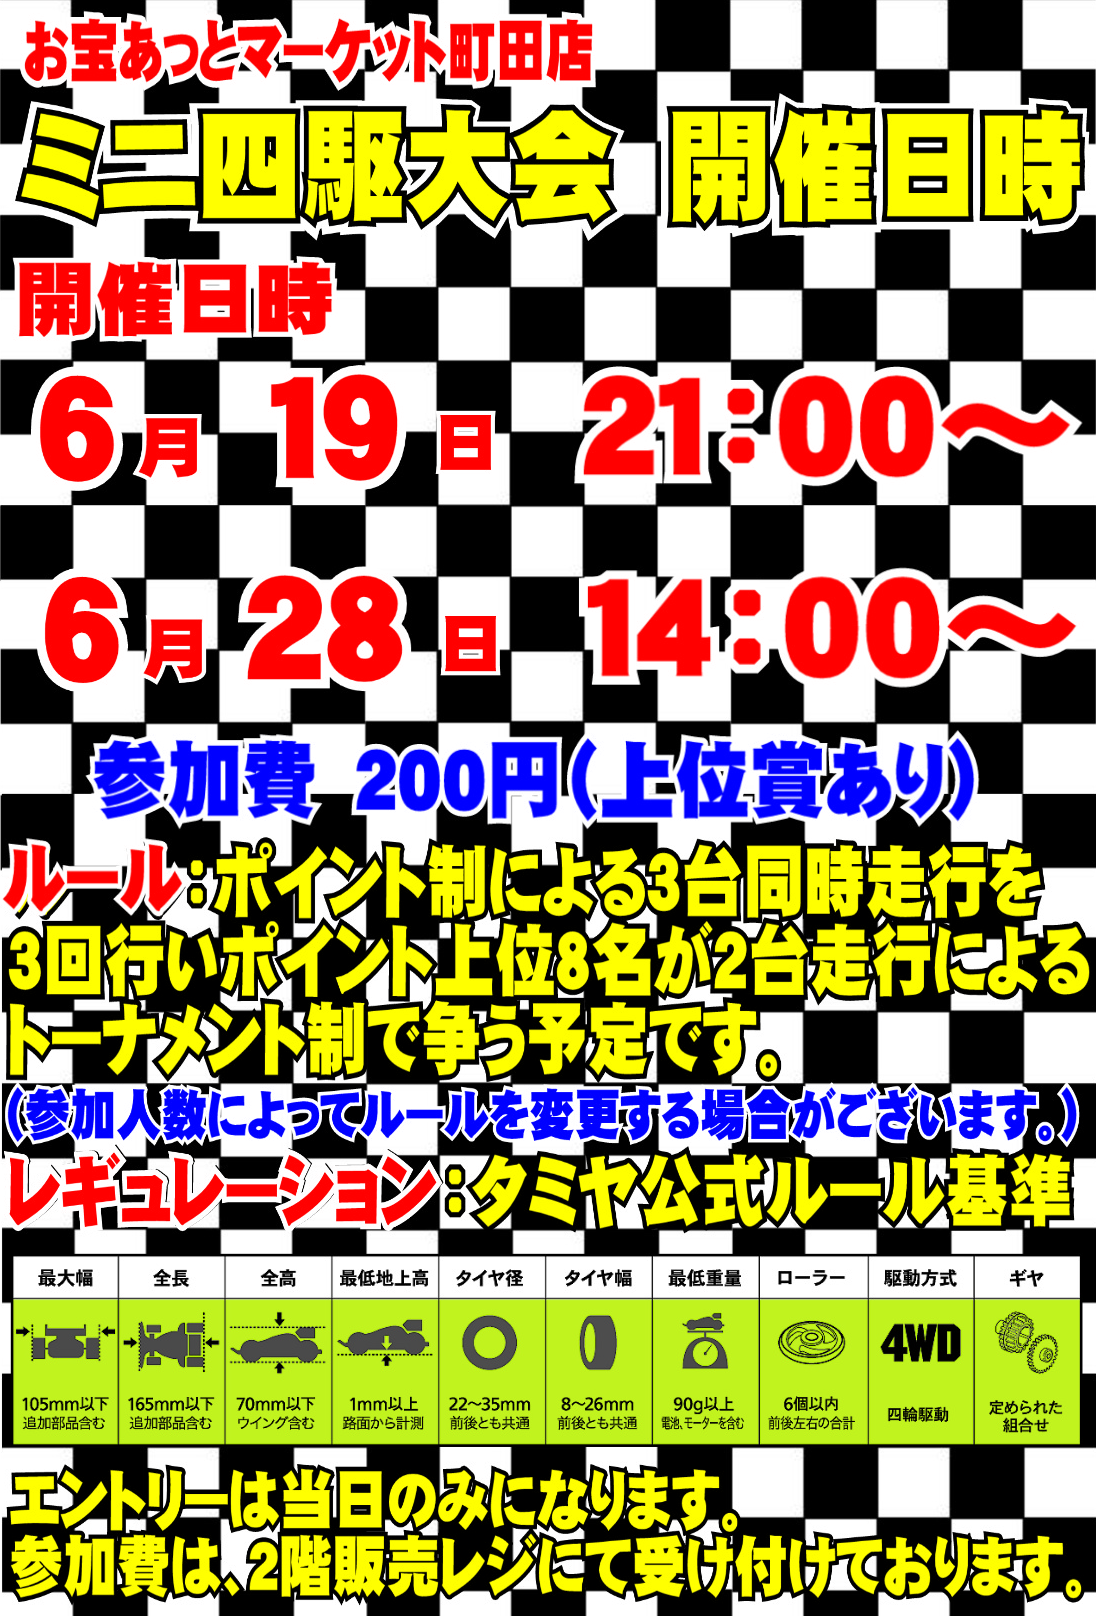 20150525101504042.png